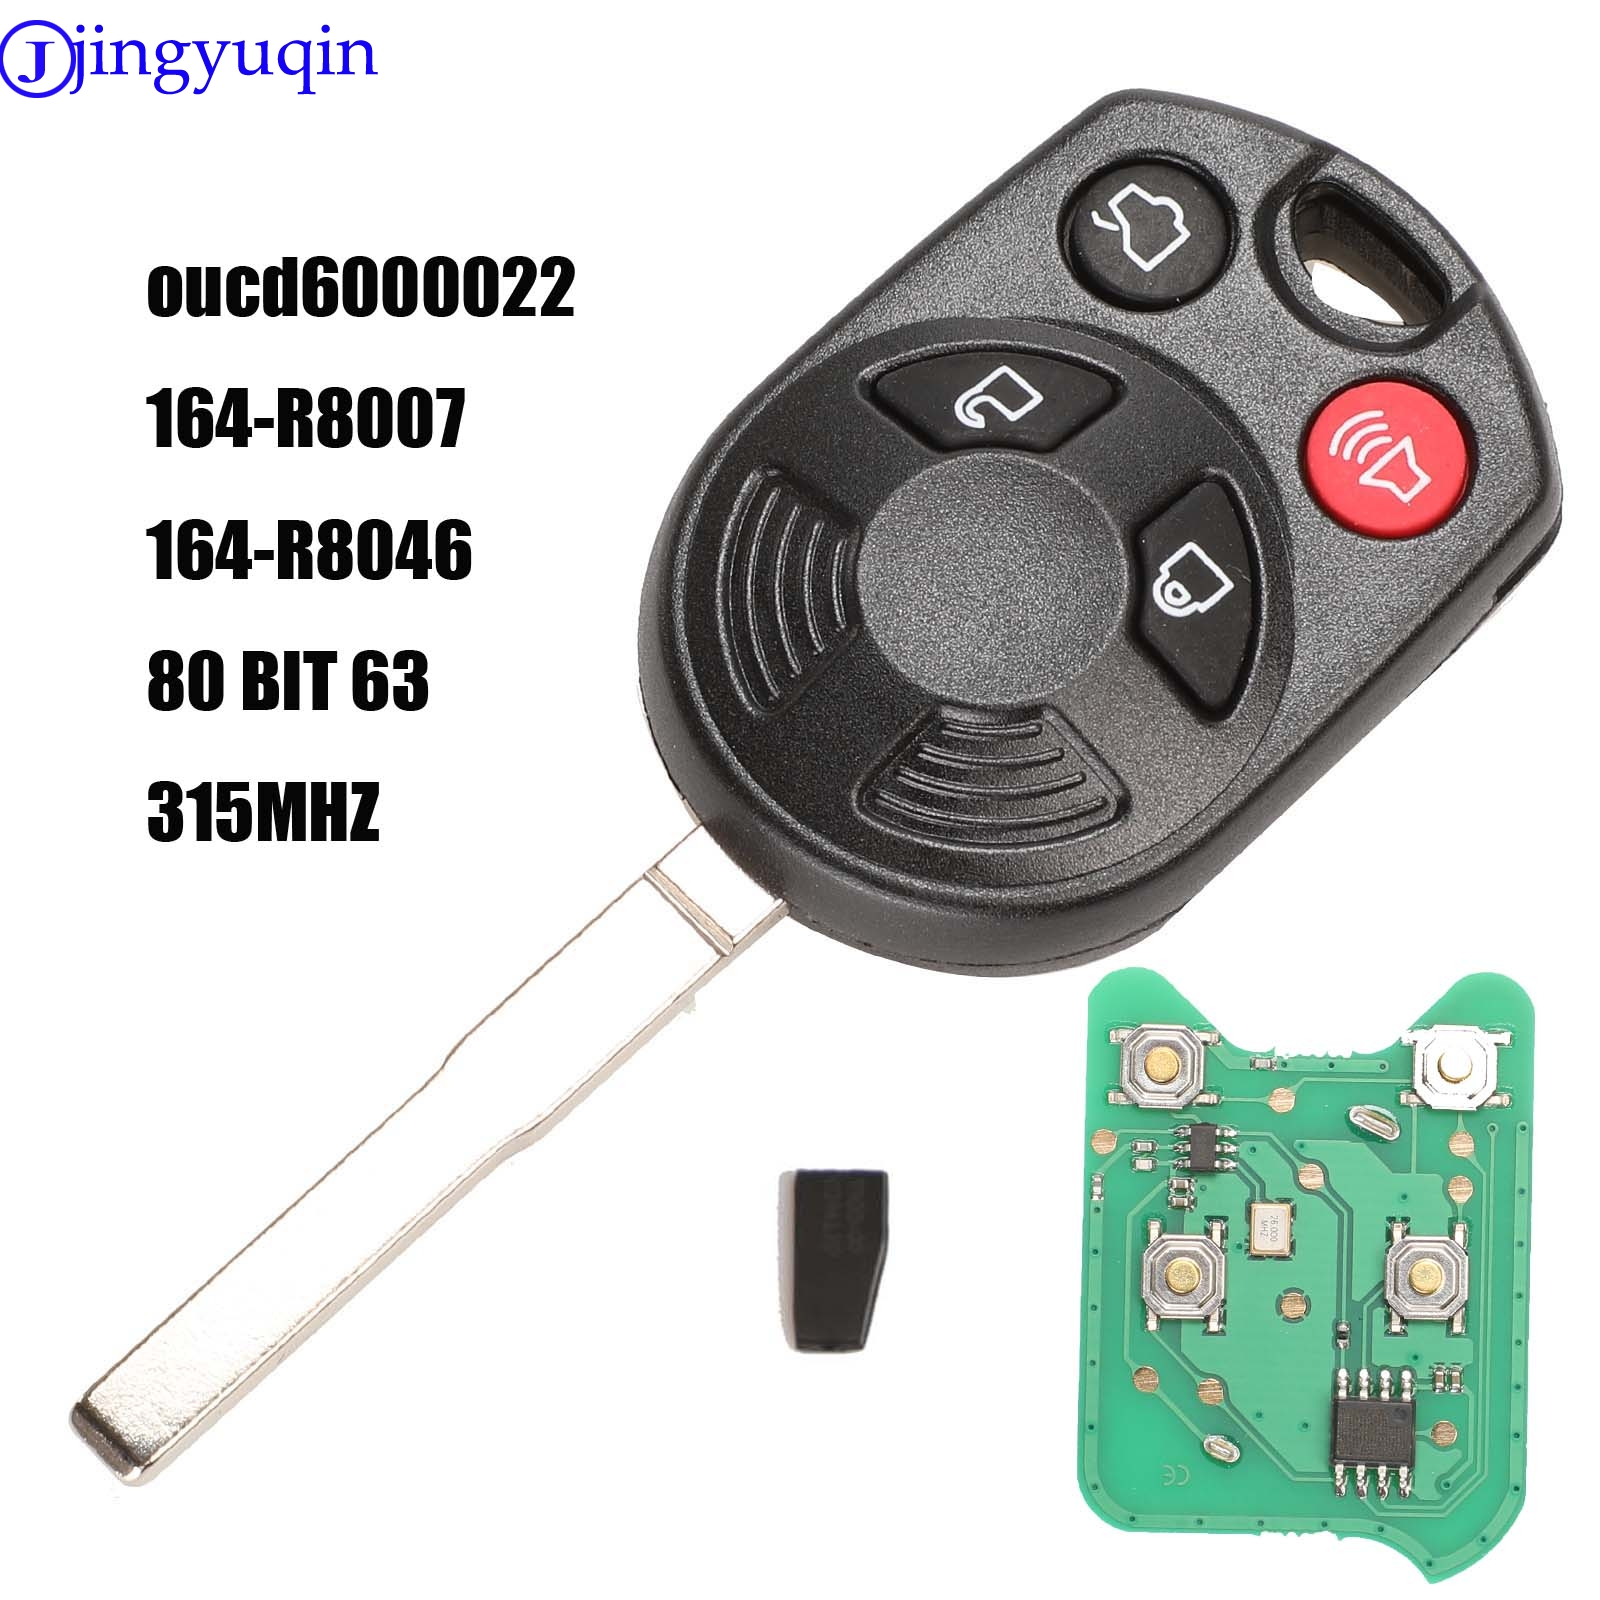 Complete Remote Car Key Fob 4 Button ID63 Chip 80 Bit For Ford Edge Escape Focus Lincoln Mazda Mercury OUCD6000022 315Mhz|Car Key| |  - title=